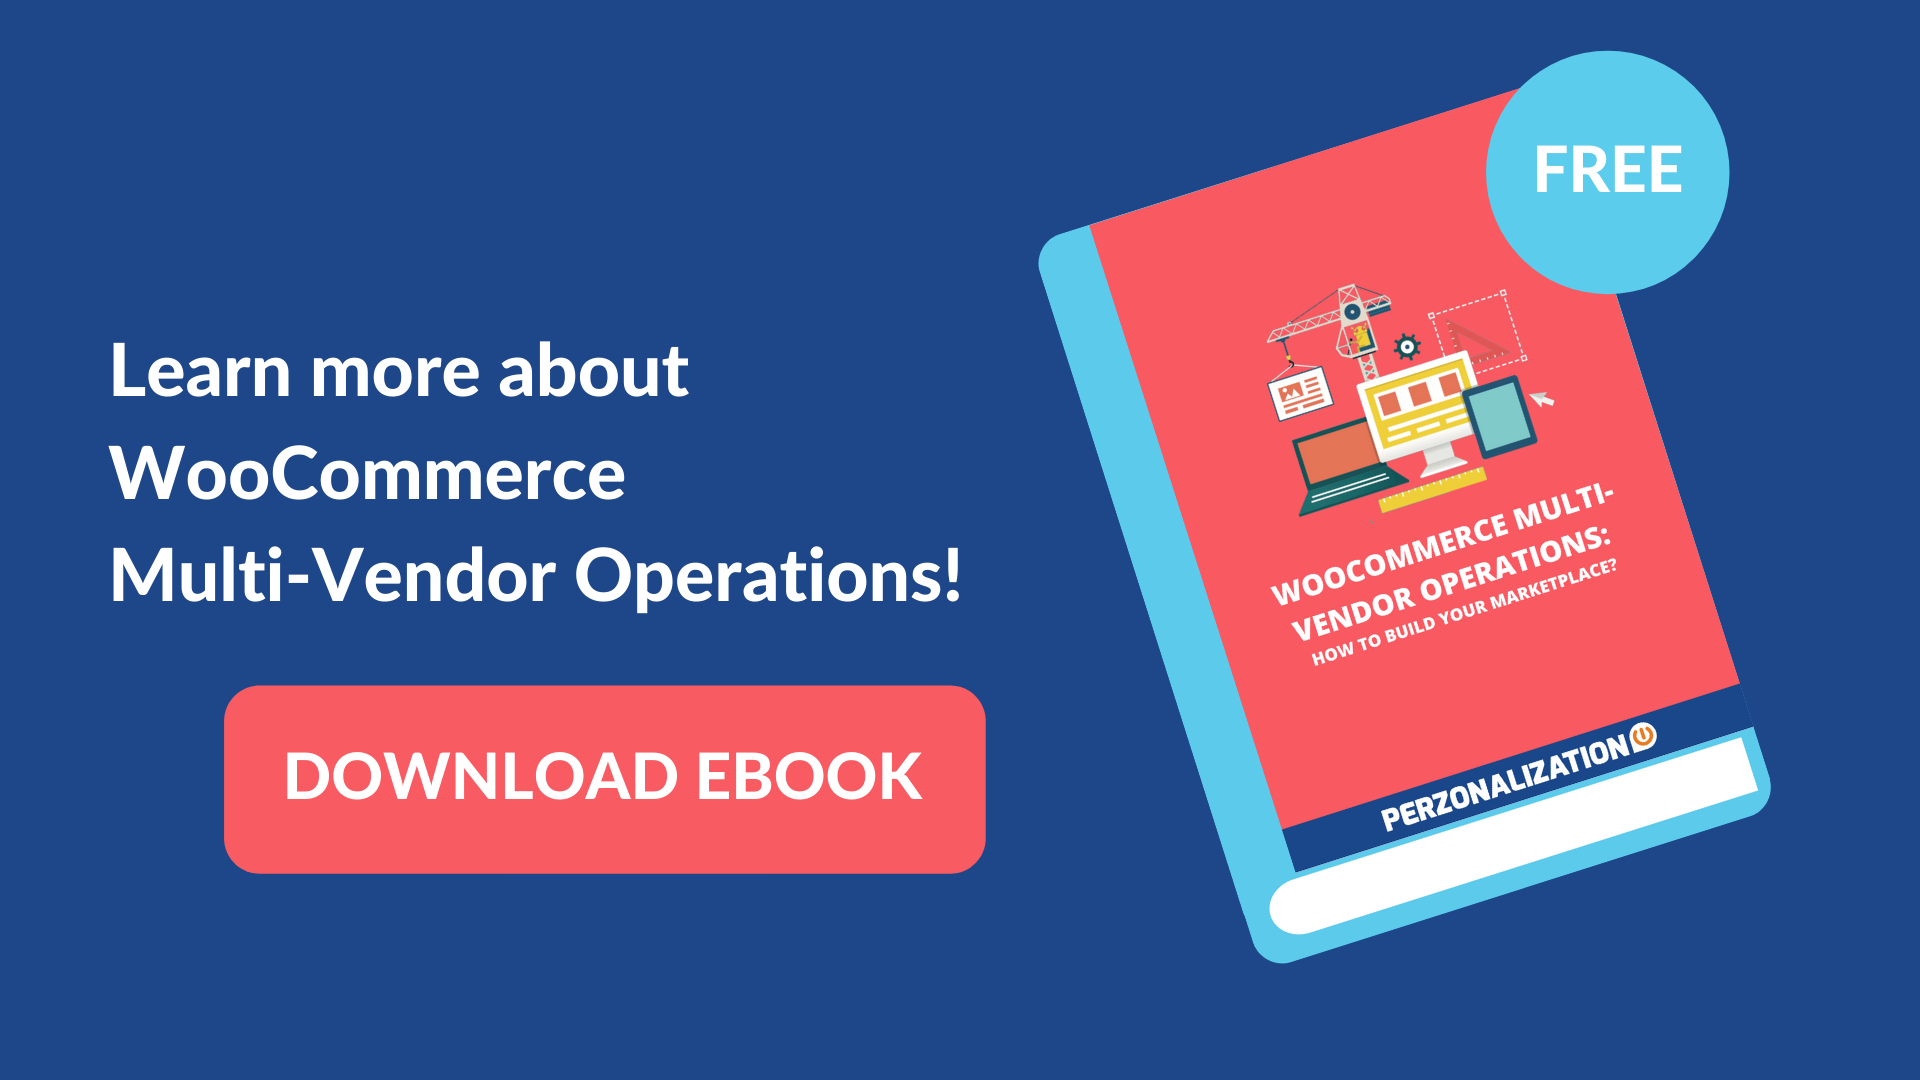 This free eBook is all about WooCommerce multi-vendor marketplace, we briefly explained how this business model works for WooCommerce or WordPress.